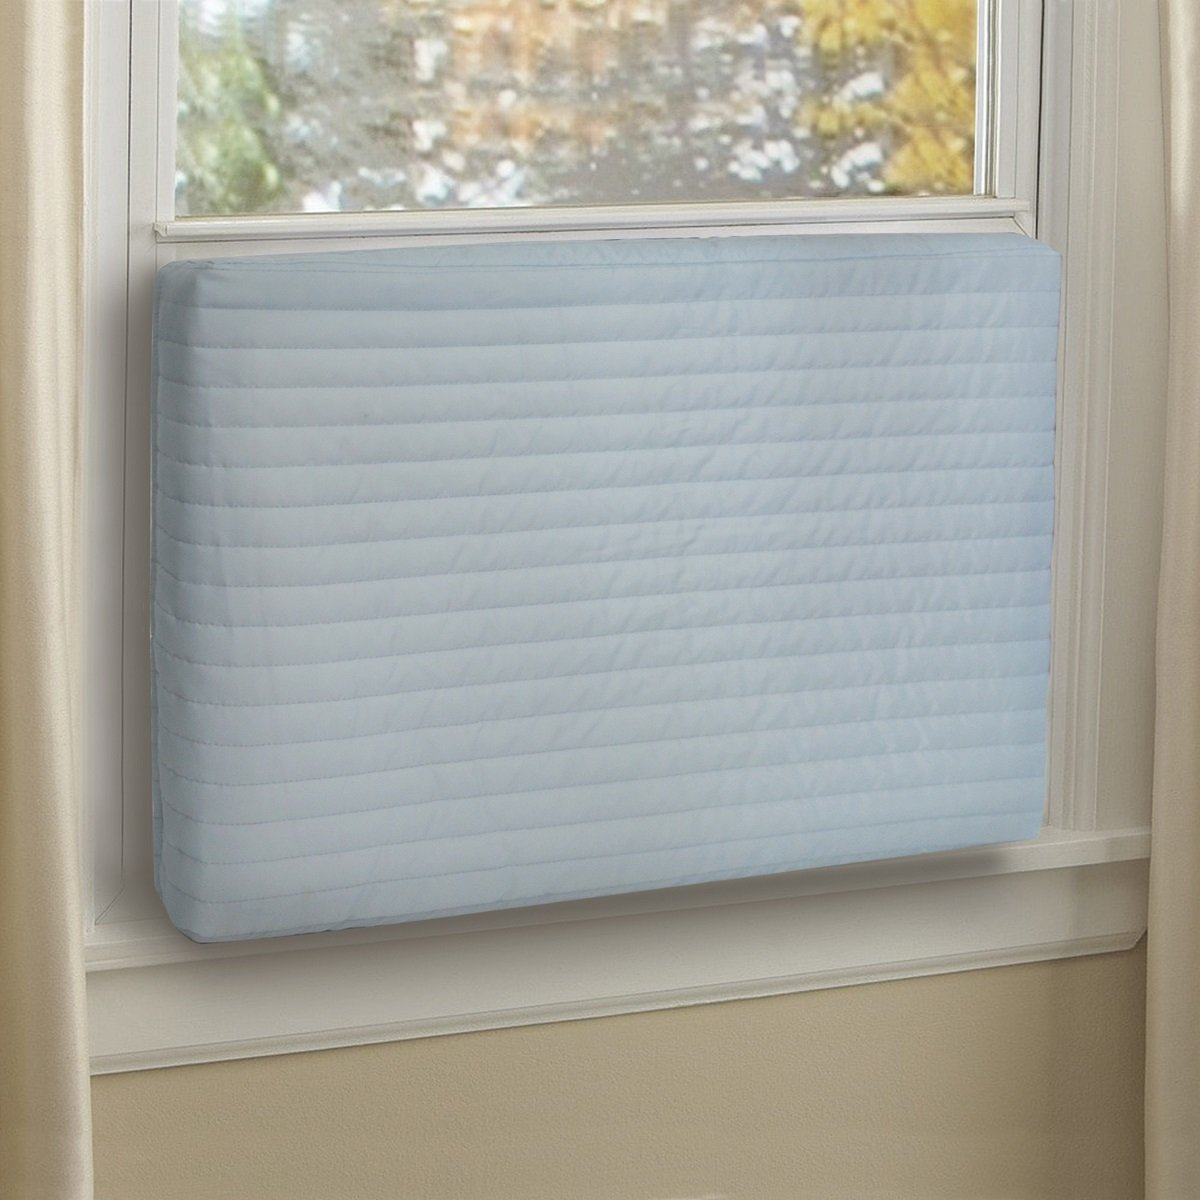 Jeacent Indoor Air Conditioner Cover Small Steel-Blue